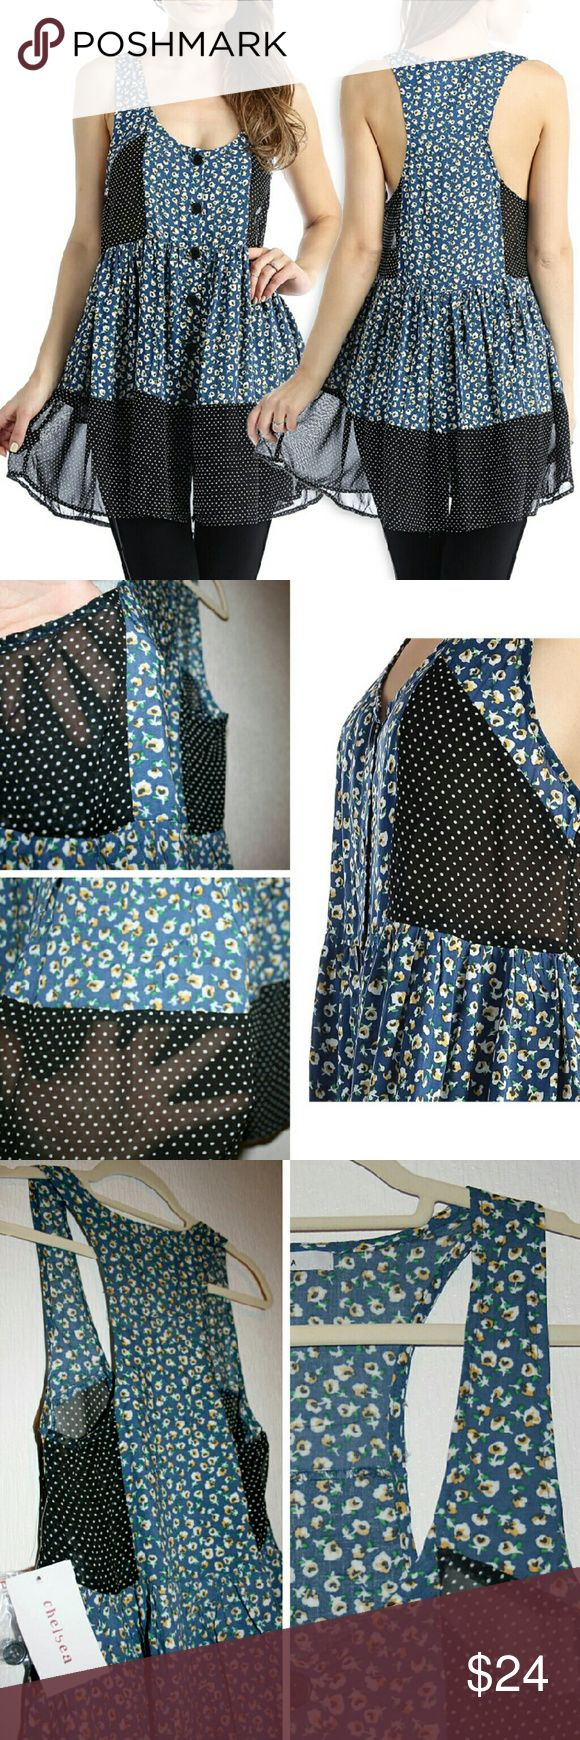 Floral & Polka Dot Buttoned Racerback Tunic NWT I am pretty sure this is the most adorable tunic ever! I mean, it's so cute I can't stand it! :D It features black & white polka dot panels on the sides and bottom, while the body is a sweet yellow & white flower print on blue. The polka dot fabric is definitely sheer while the floral print body is just really lightweight. I also love that it has cute buttons up the front (and a spare). The shell is 100% polyester, and the contrast is 100%…